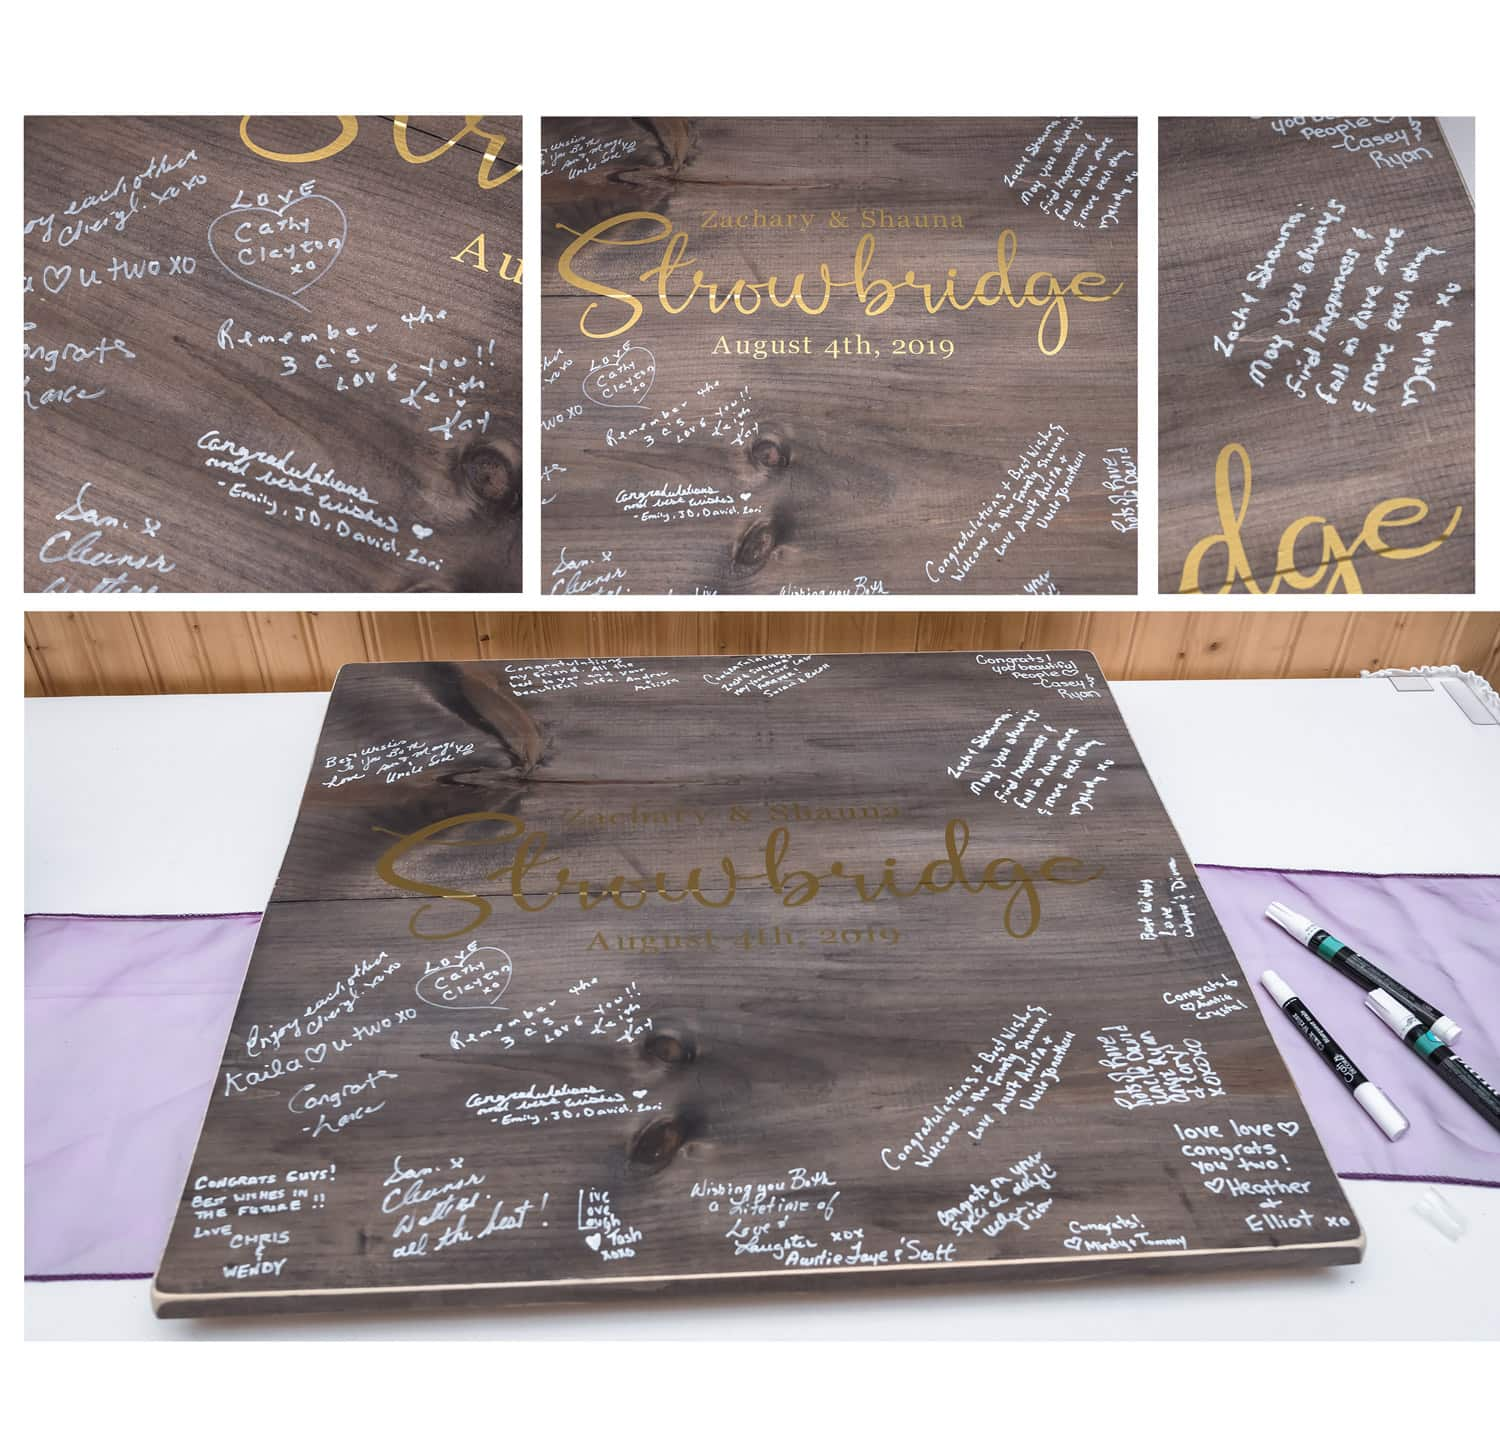 wooden stained wedding guest book sign for guests to sign with markers displayed at a White Point Beach Resort wedding